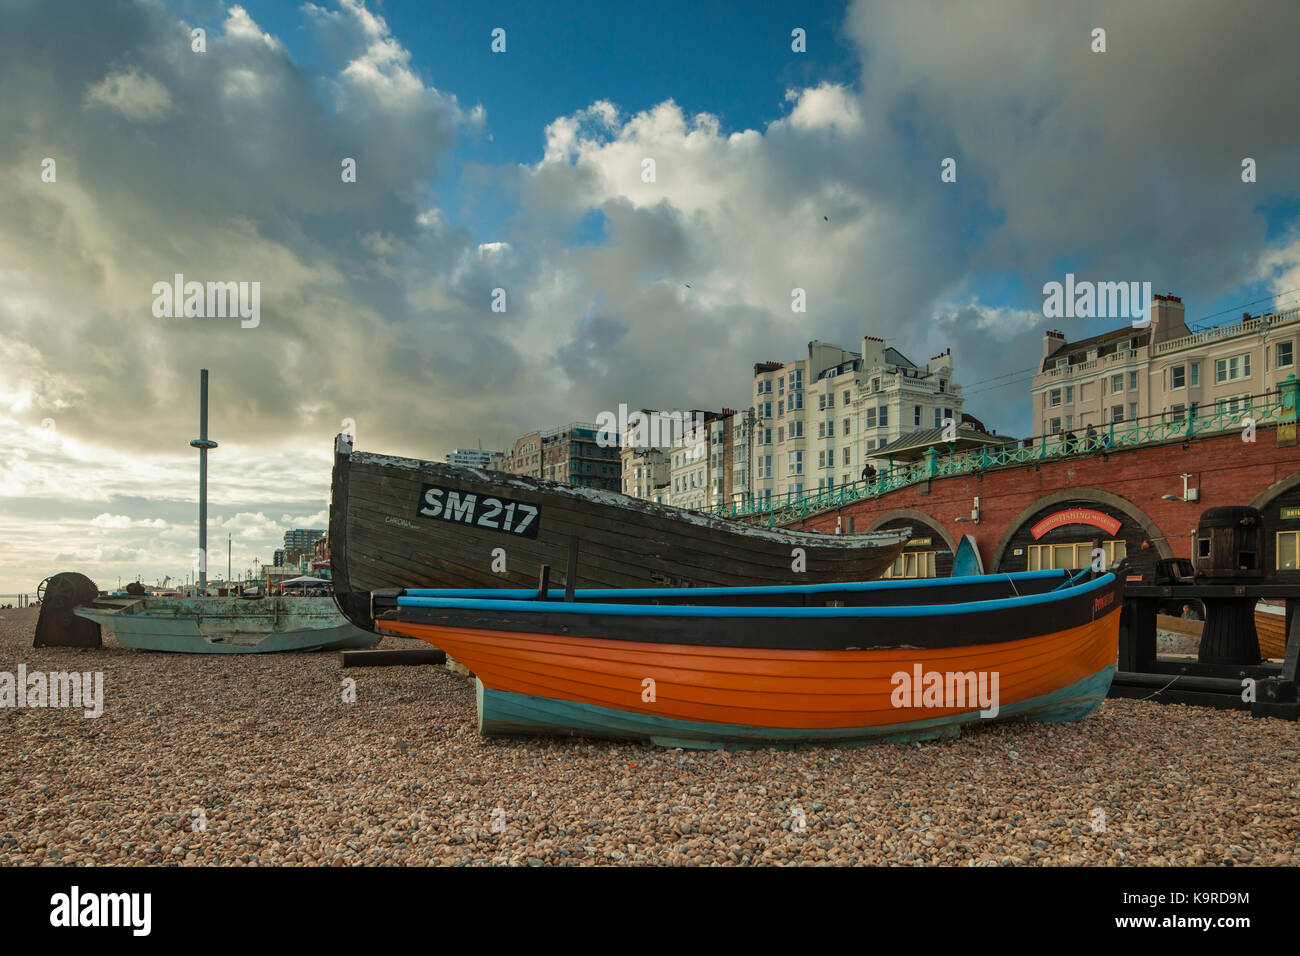 Evening on Brighton beach, East Sussex, England. - Stock Image